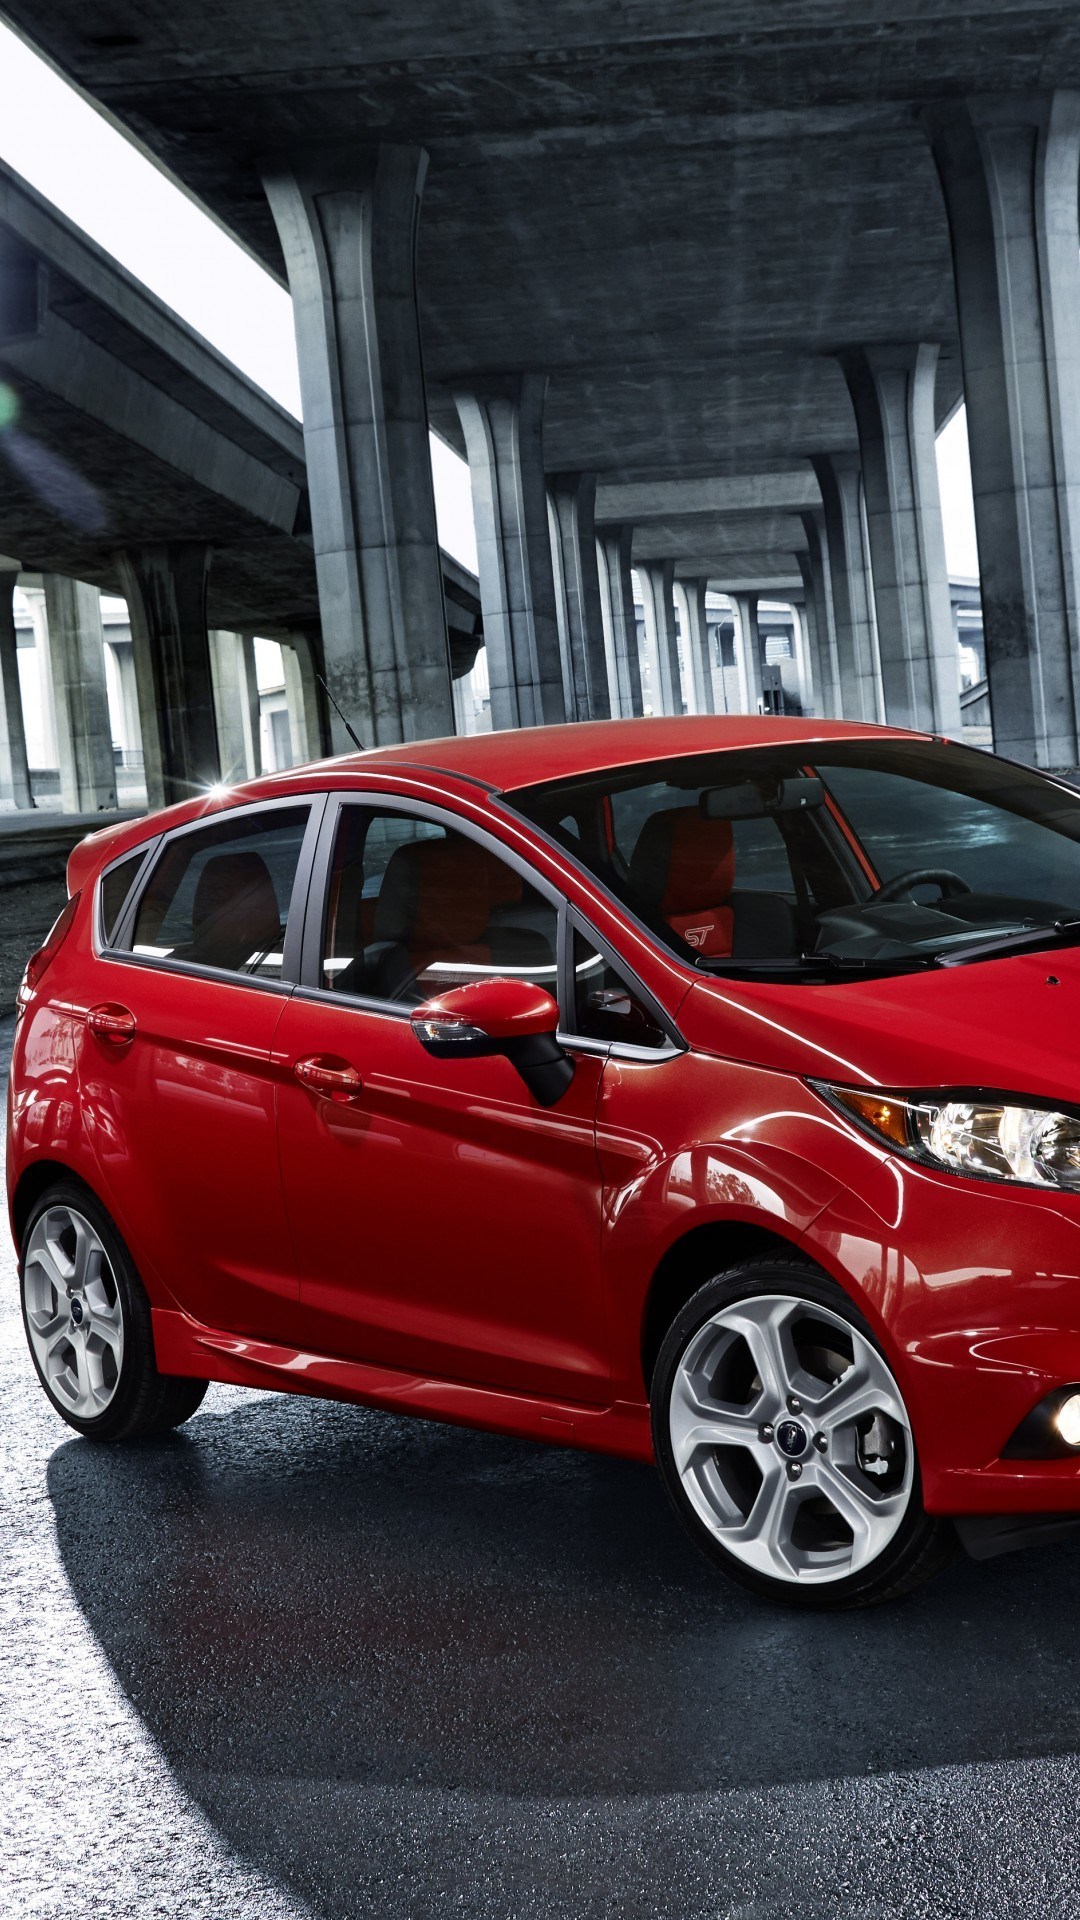 Ford Fiesta Wallpapers 62 Images